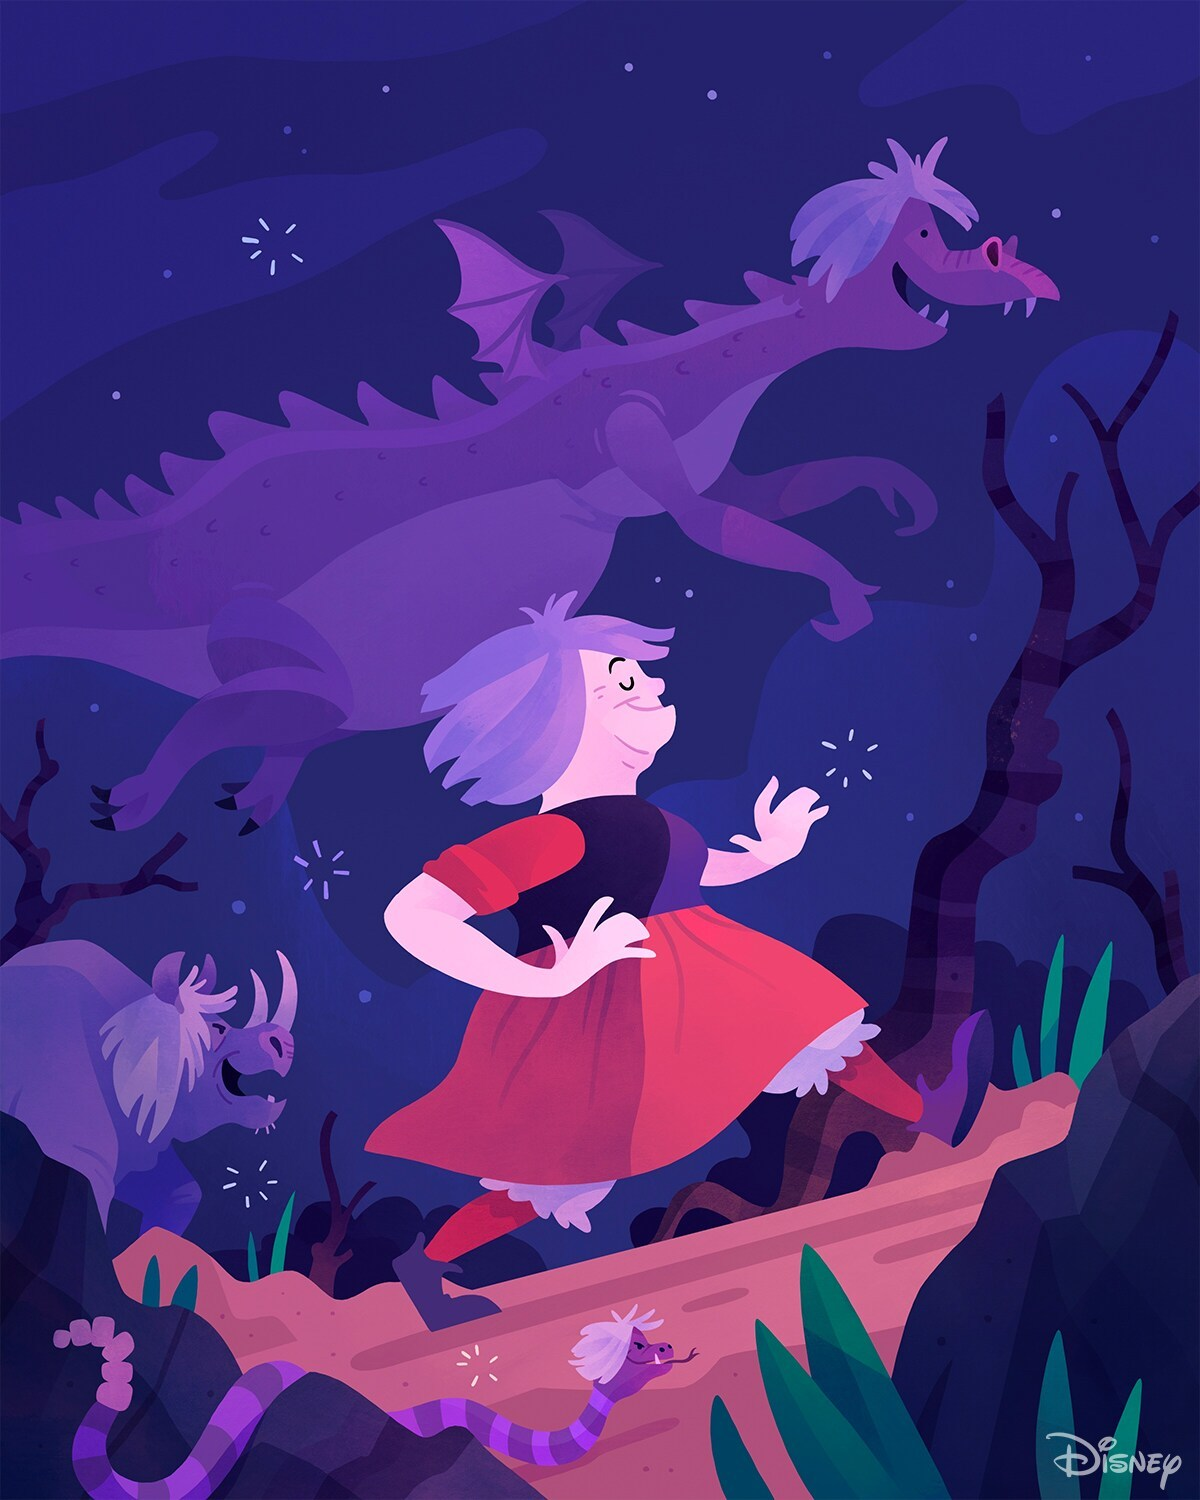 Madam Min in a red dress, as a snake, a rhino and a dragon